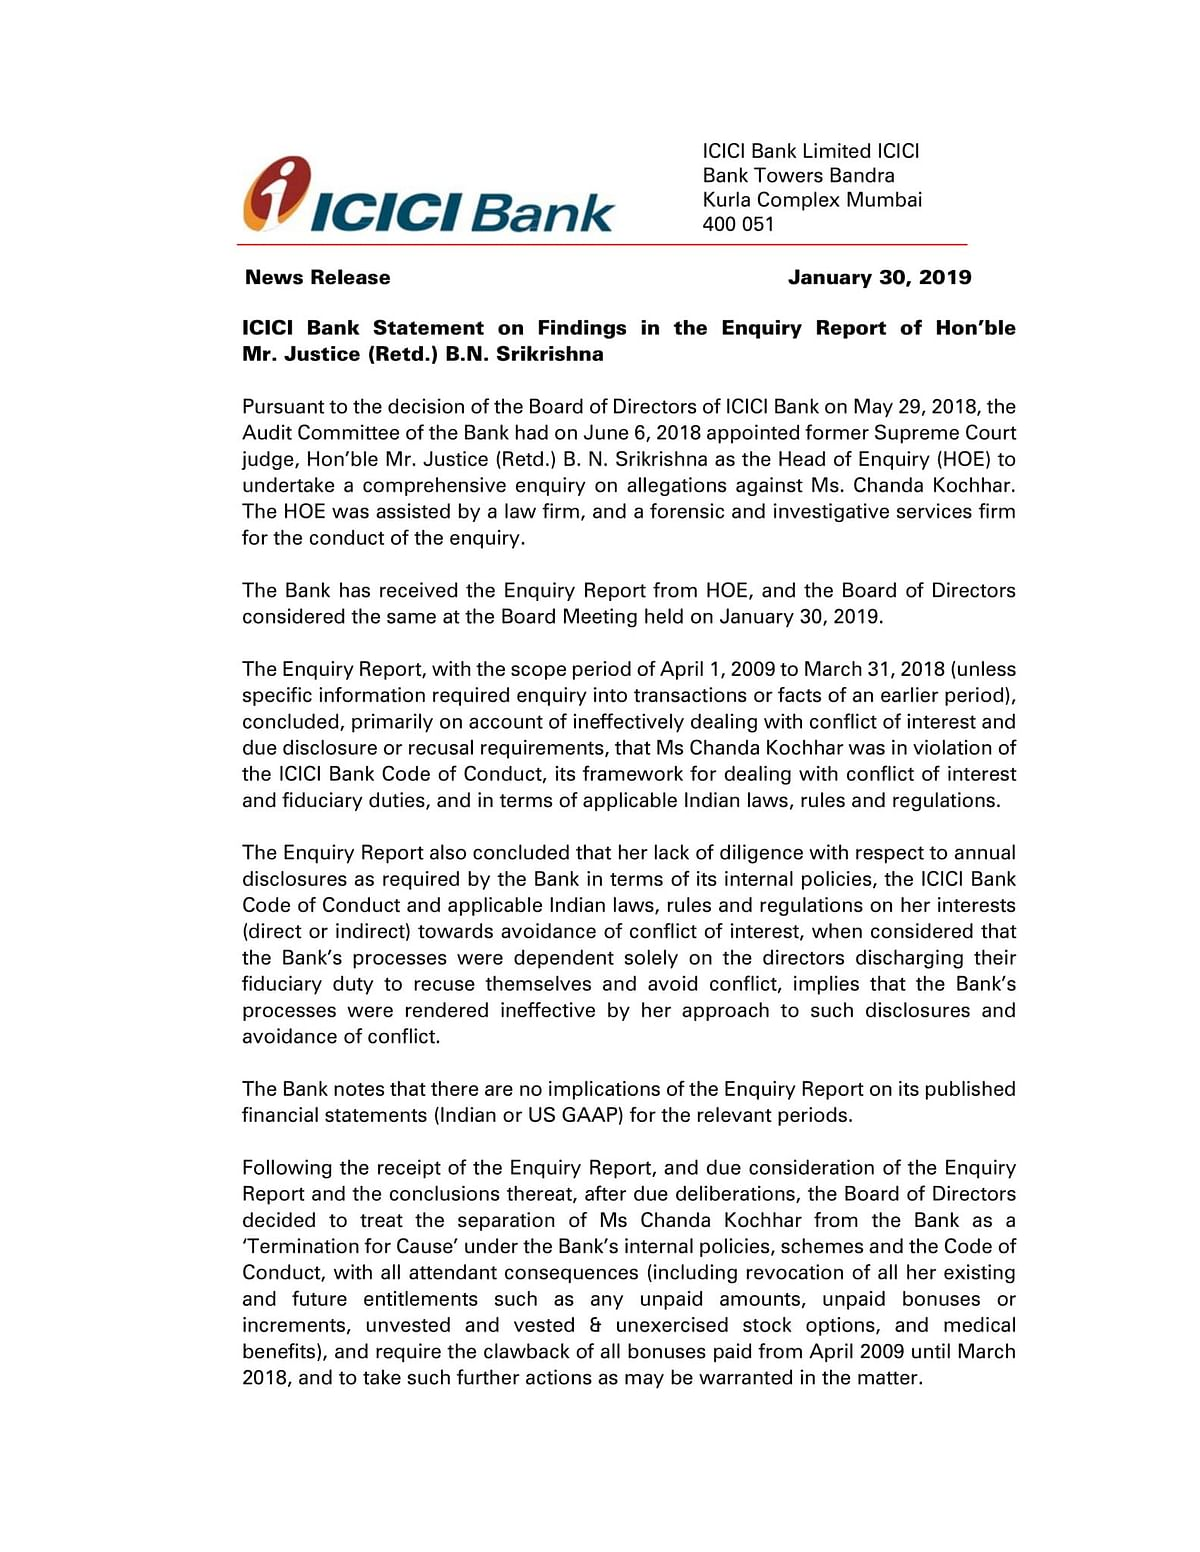 Disappointed, Hurt & Shocked: Chanda Kochhar on ICICI Probe Report